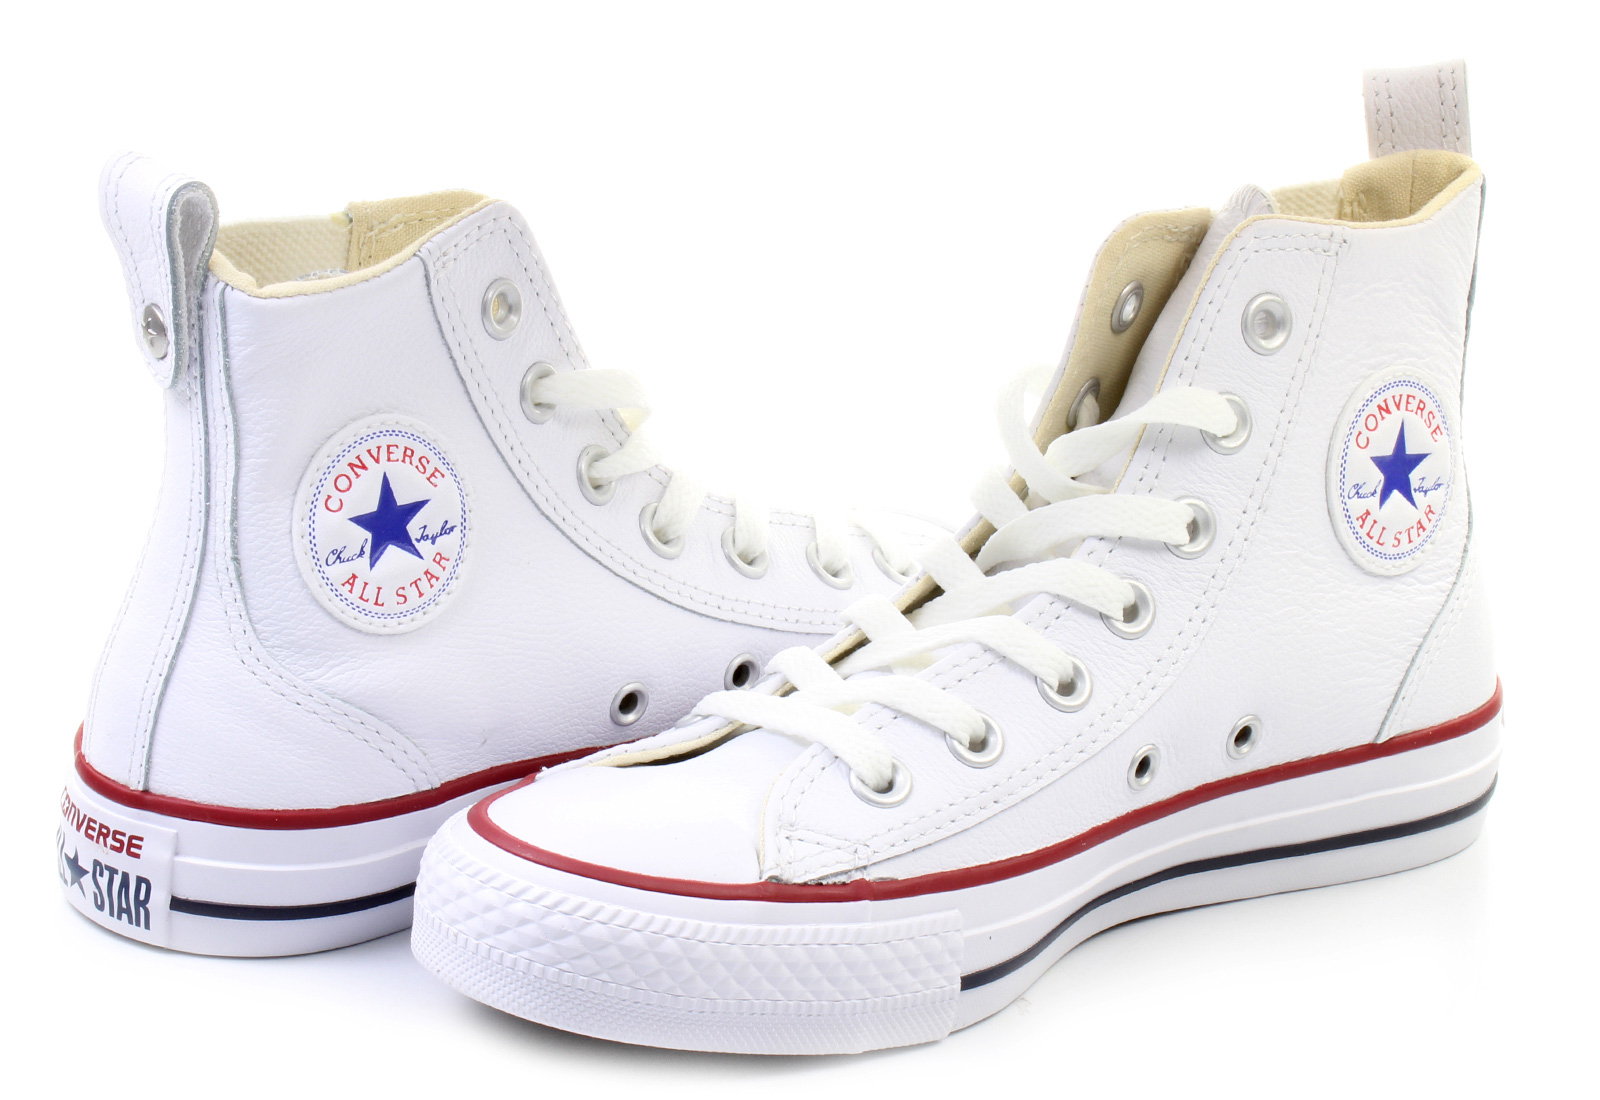 6c968657ed0 Converse Tenisky - Chuck Taylor All Star Chelsee Hi - 549710C ...